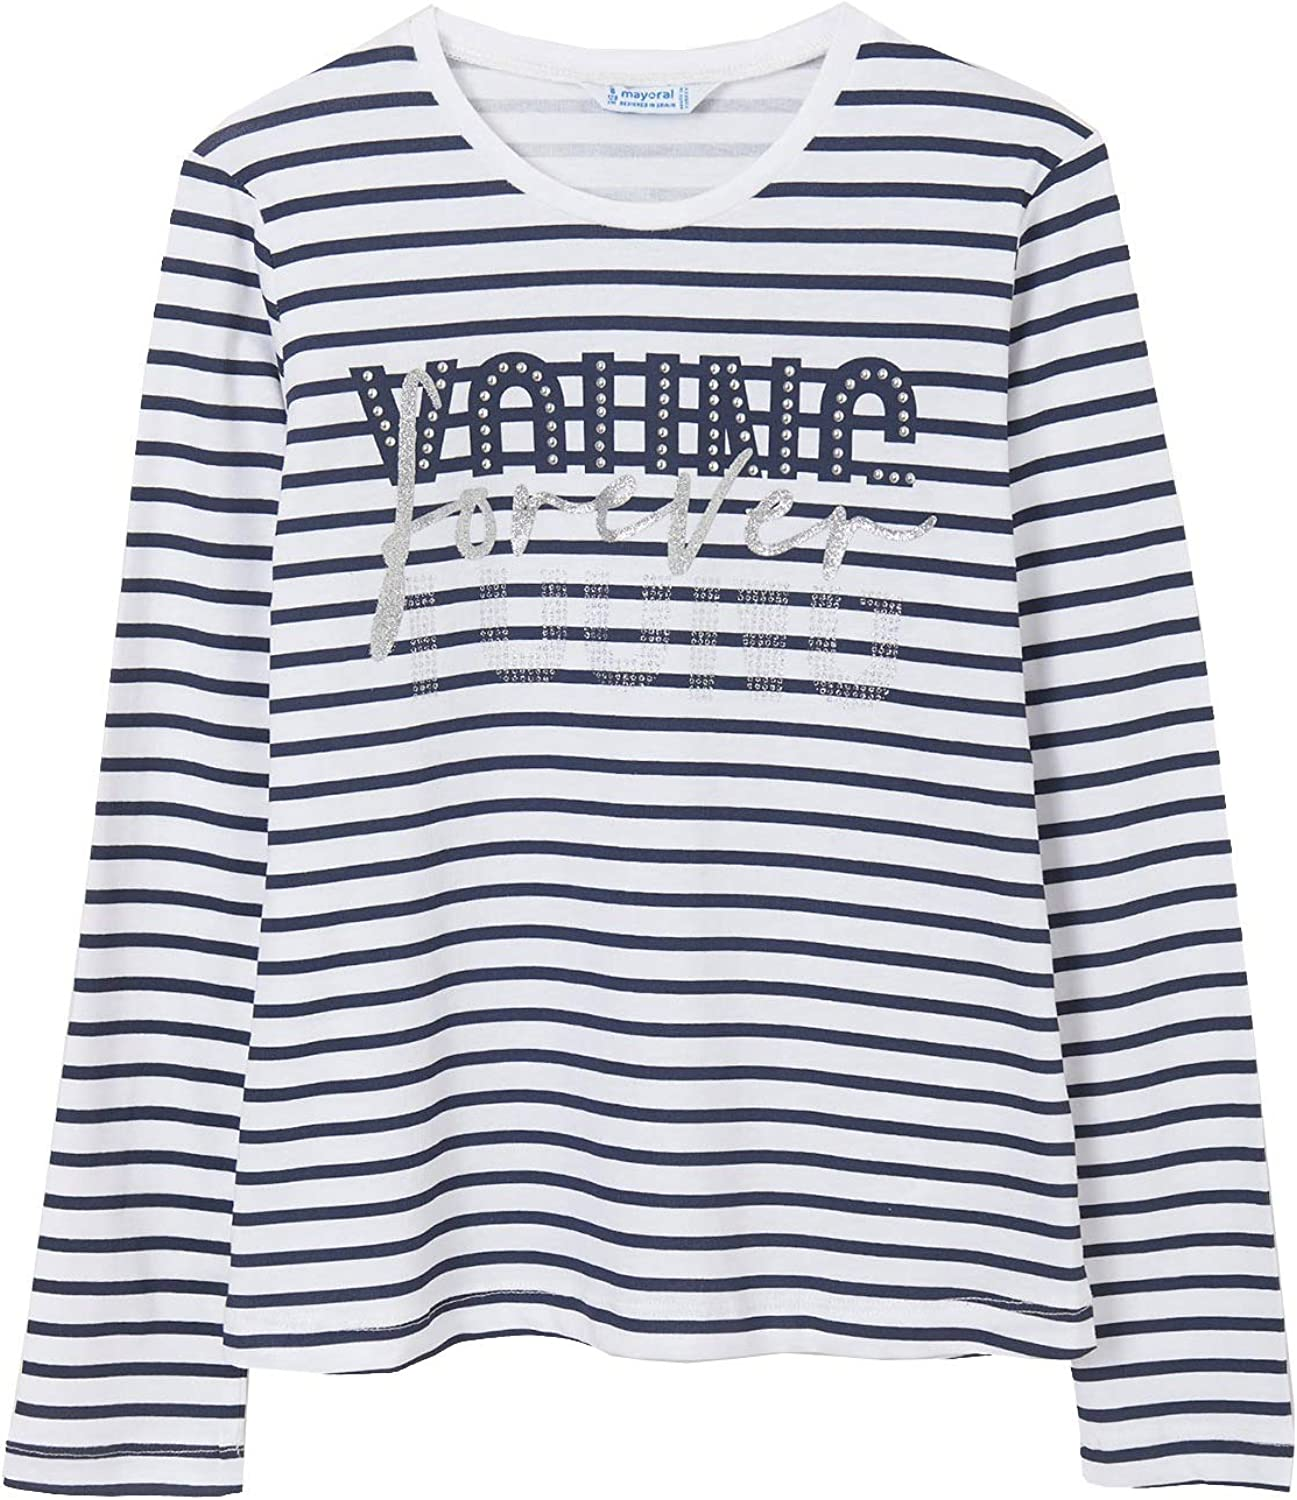 Mayoral - L/s Stripes t-Shirt for Girls - 6023, Navy